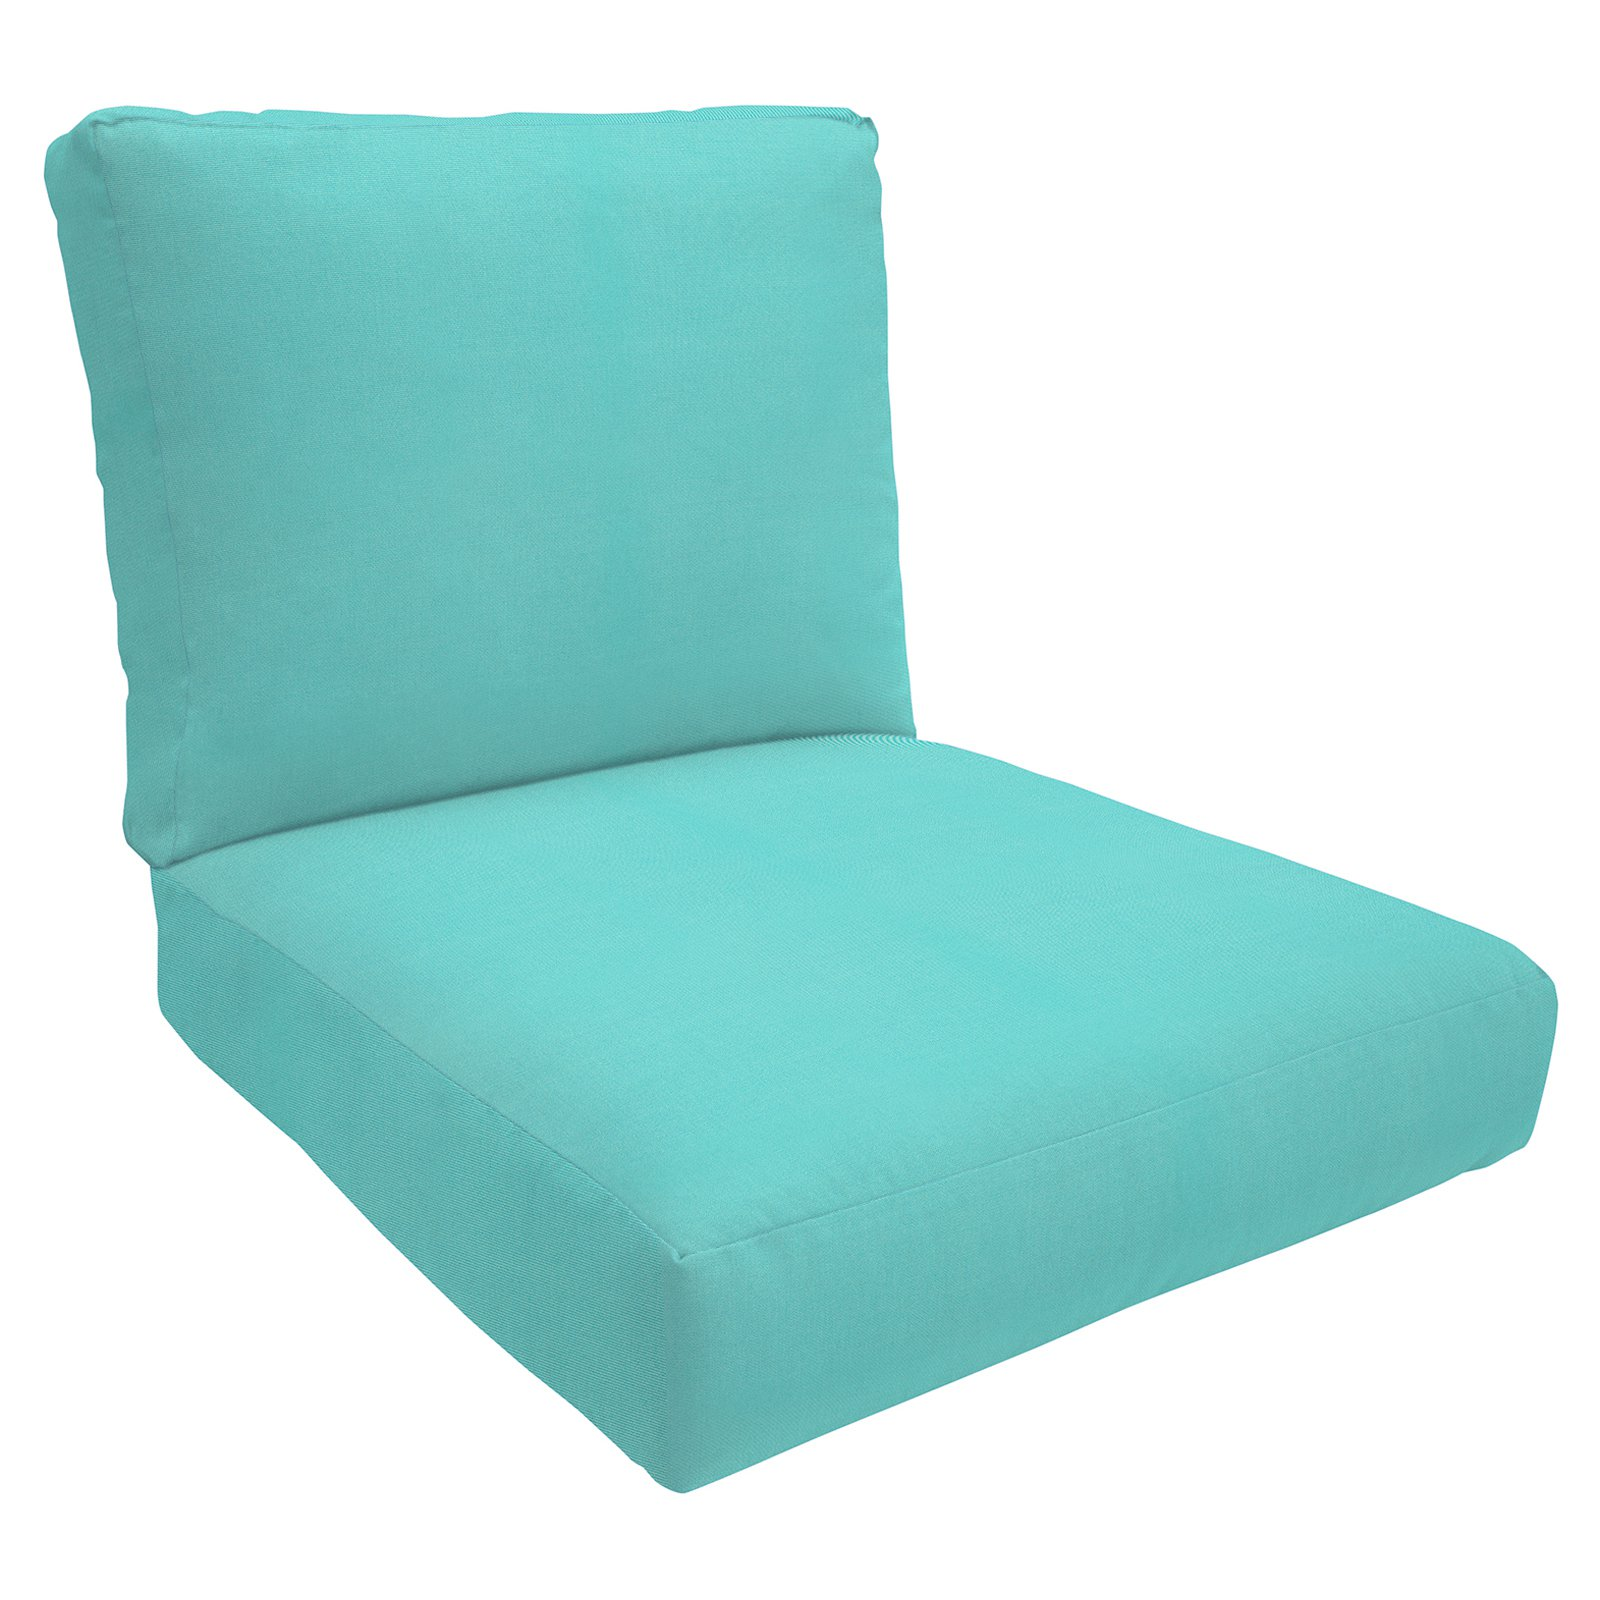 lounge chair cushions cheap covers in store eddie bauer sunbrella deep seating cushion knife edge walmart com